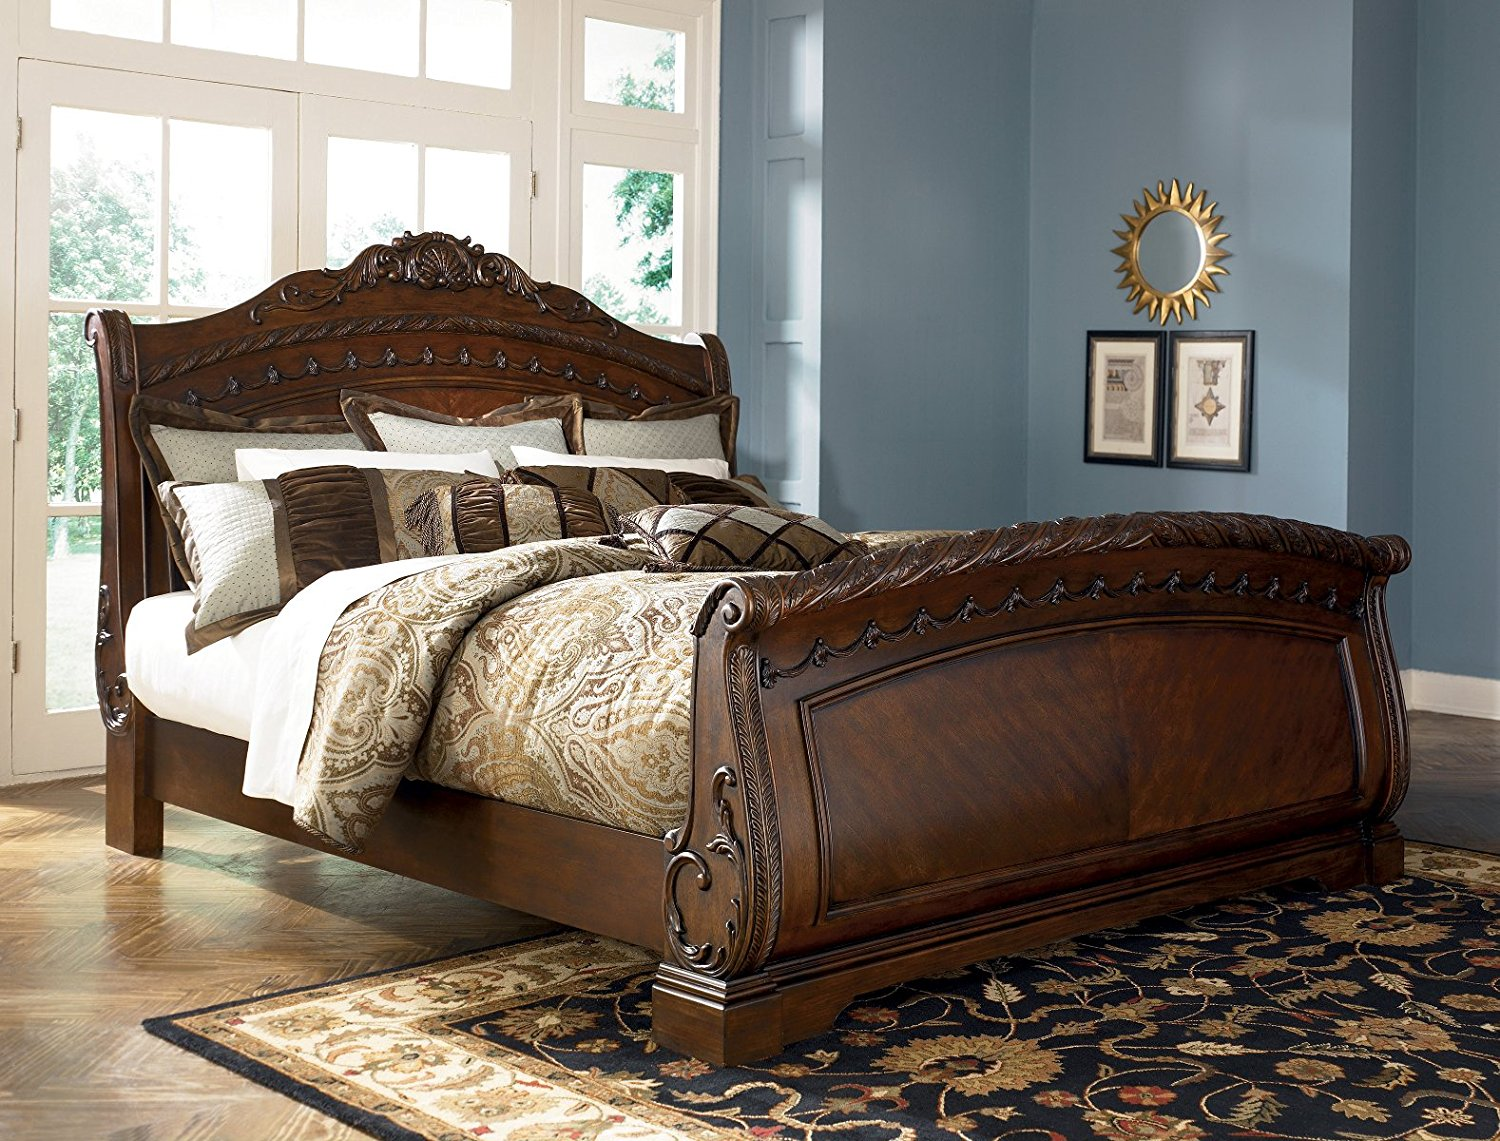 Picture of: North Shore Bedroom Set Ideas